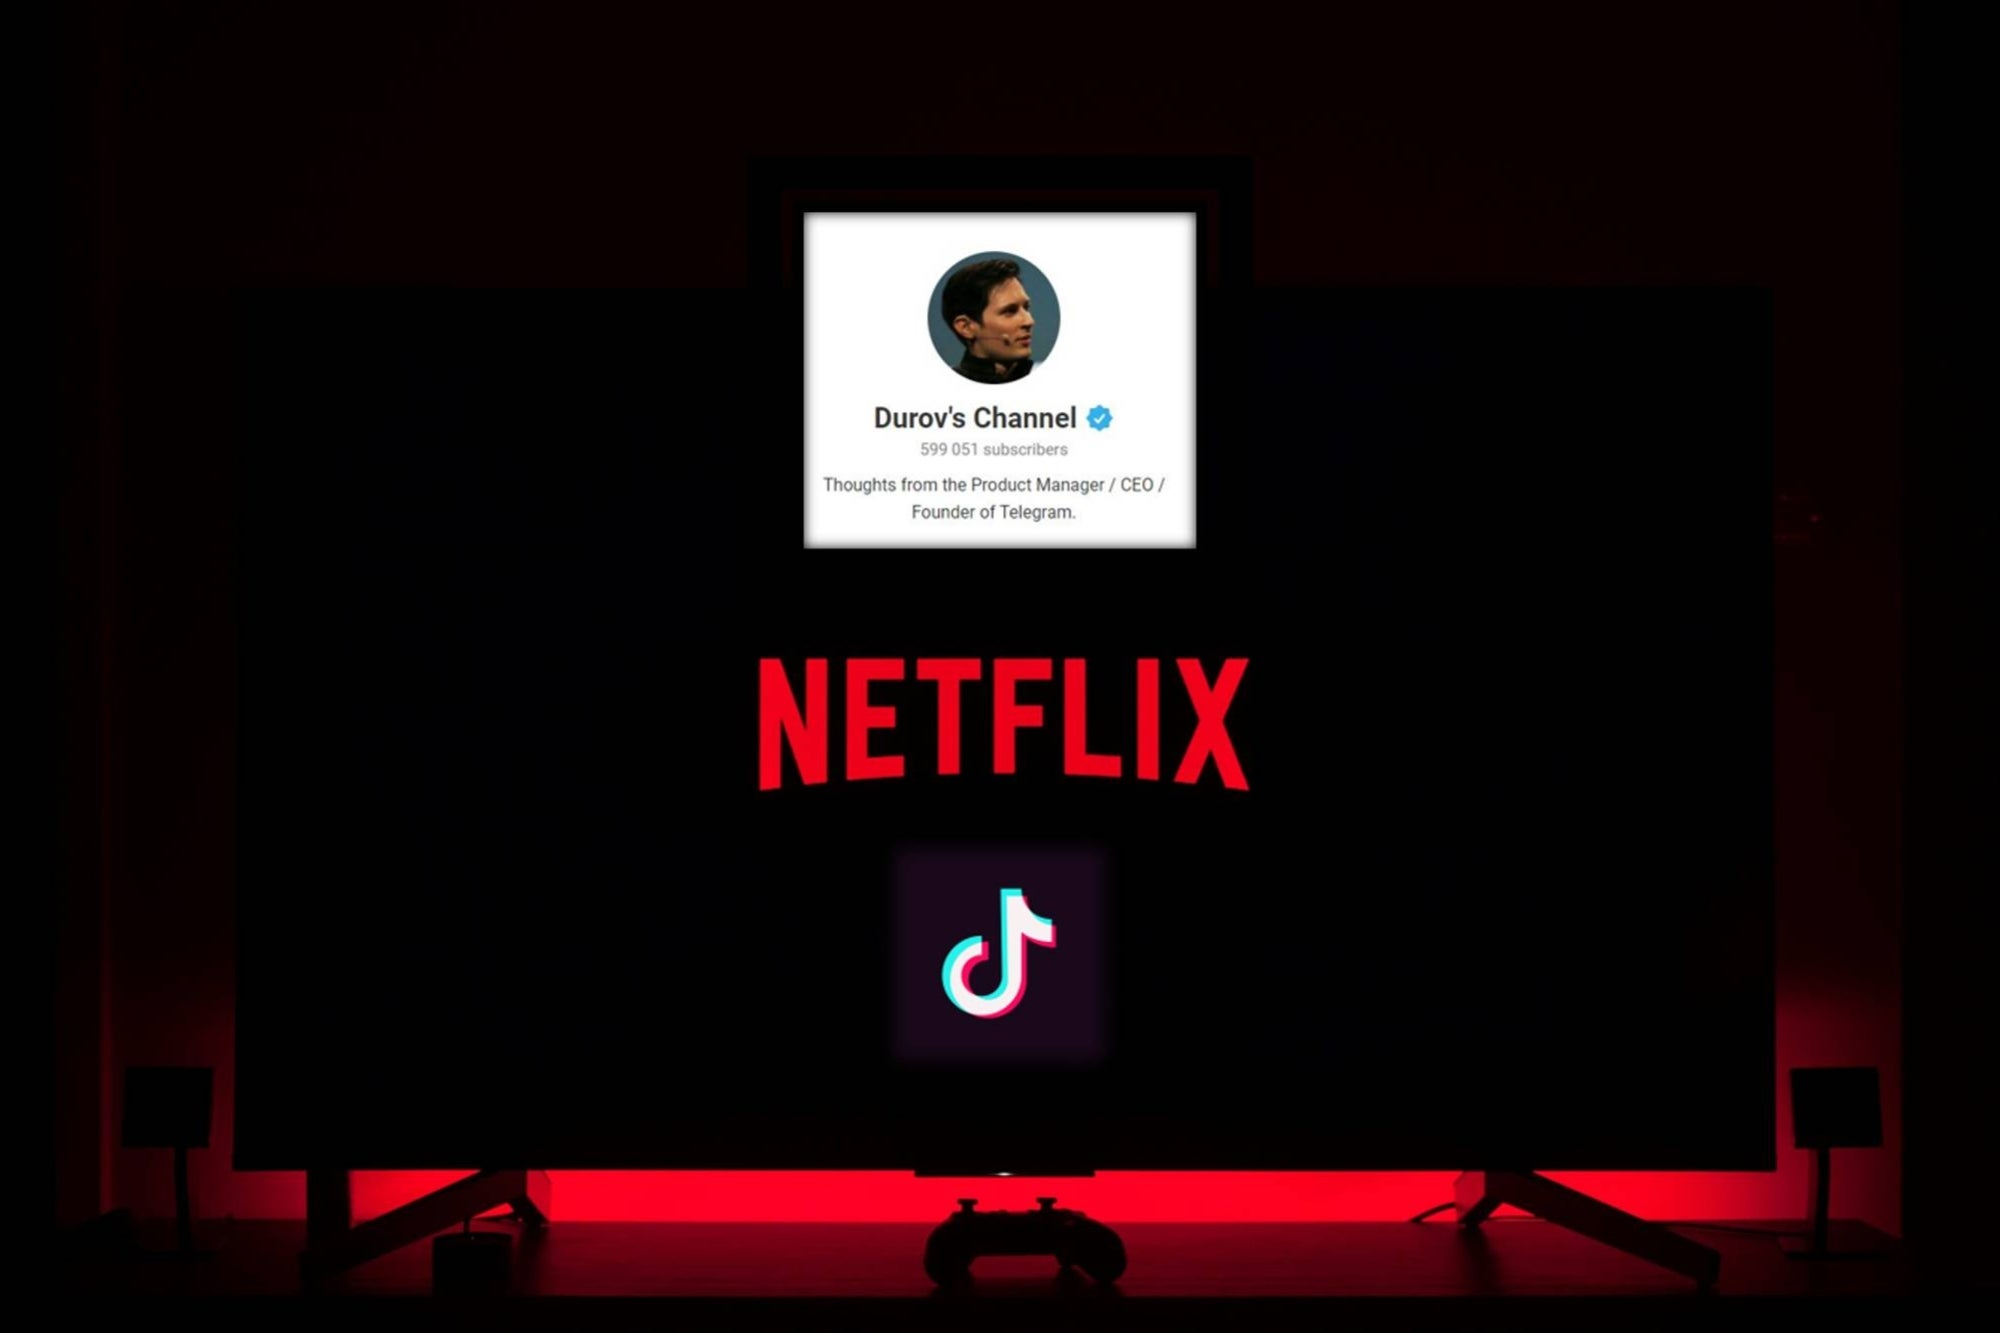 This is the reason why we must clear our mind of Netflix and TikTok content according to the founder of Telegram